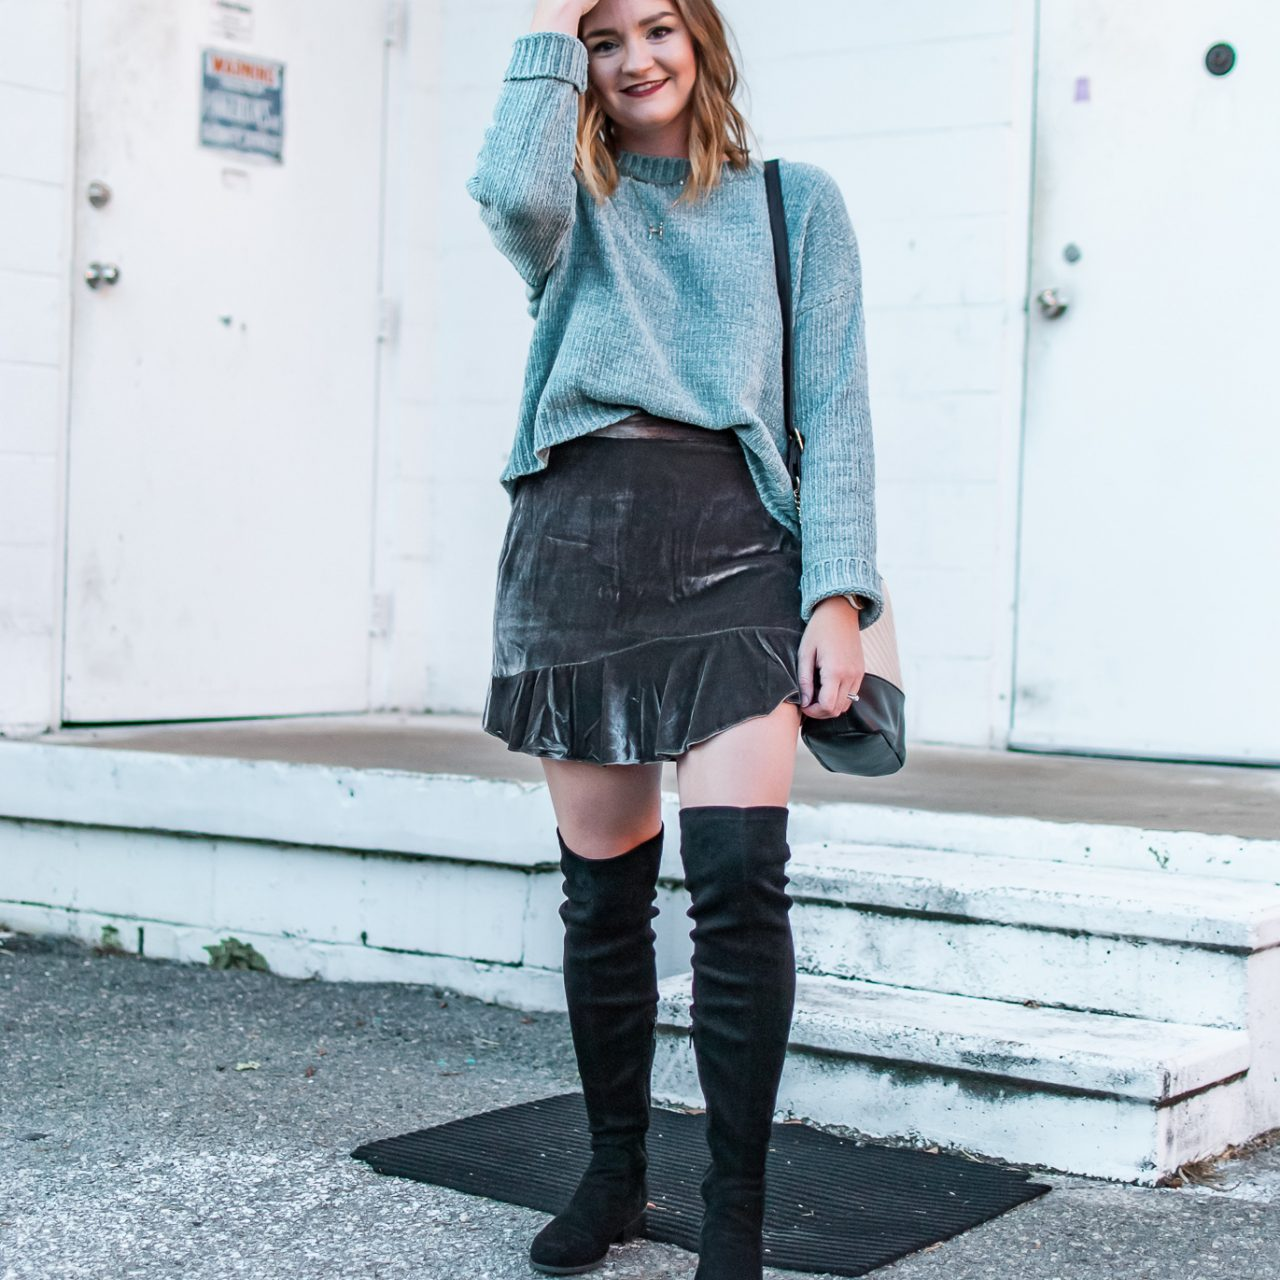 Chenille Sweaters + How To Mix Textures In An Outfit